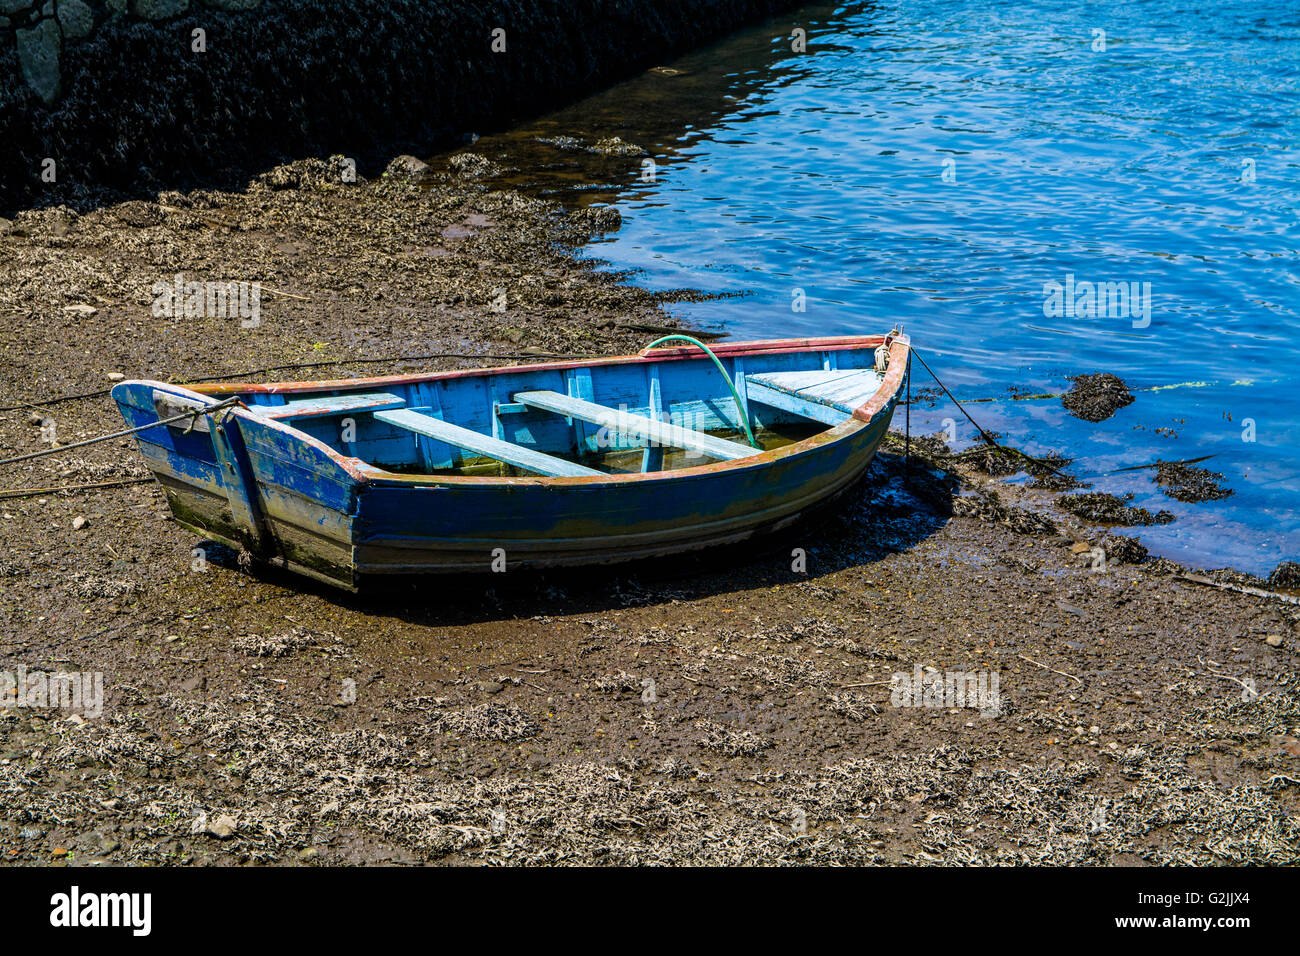 Old Blue Boat Moored at Riverbank - Stock Image